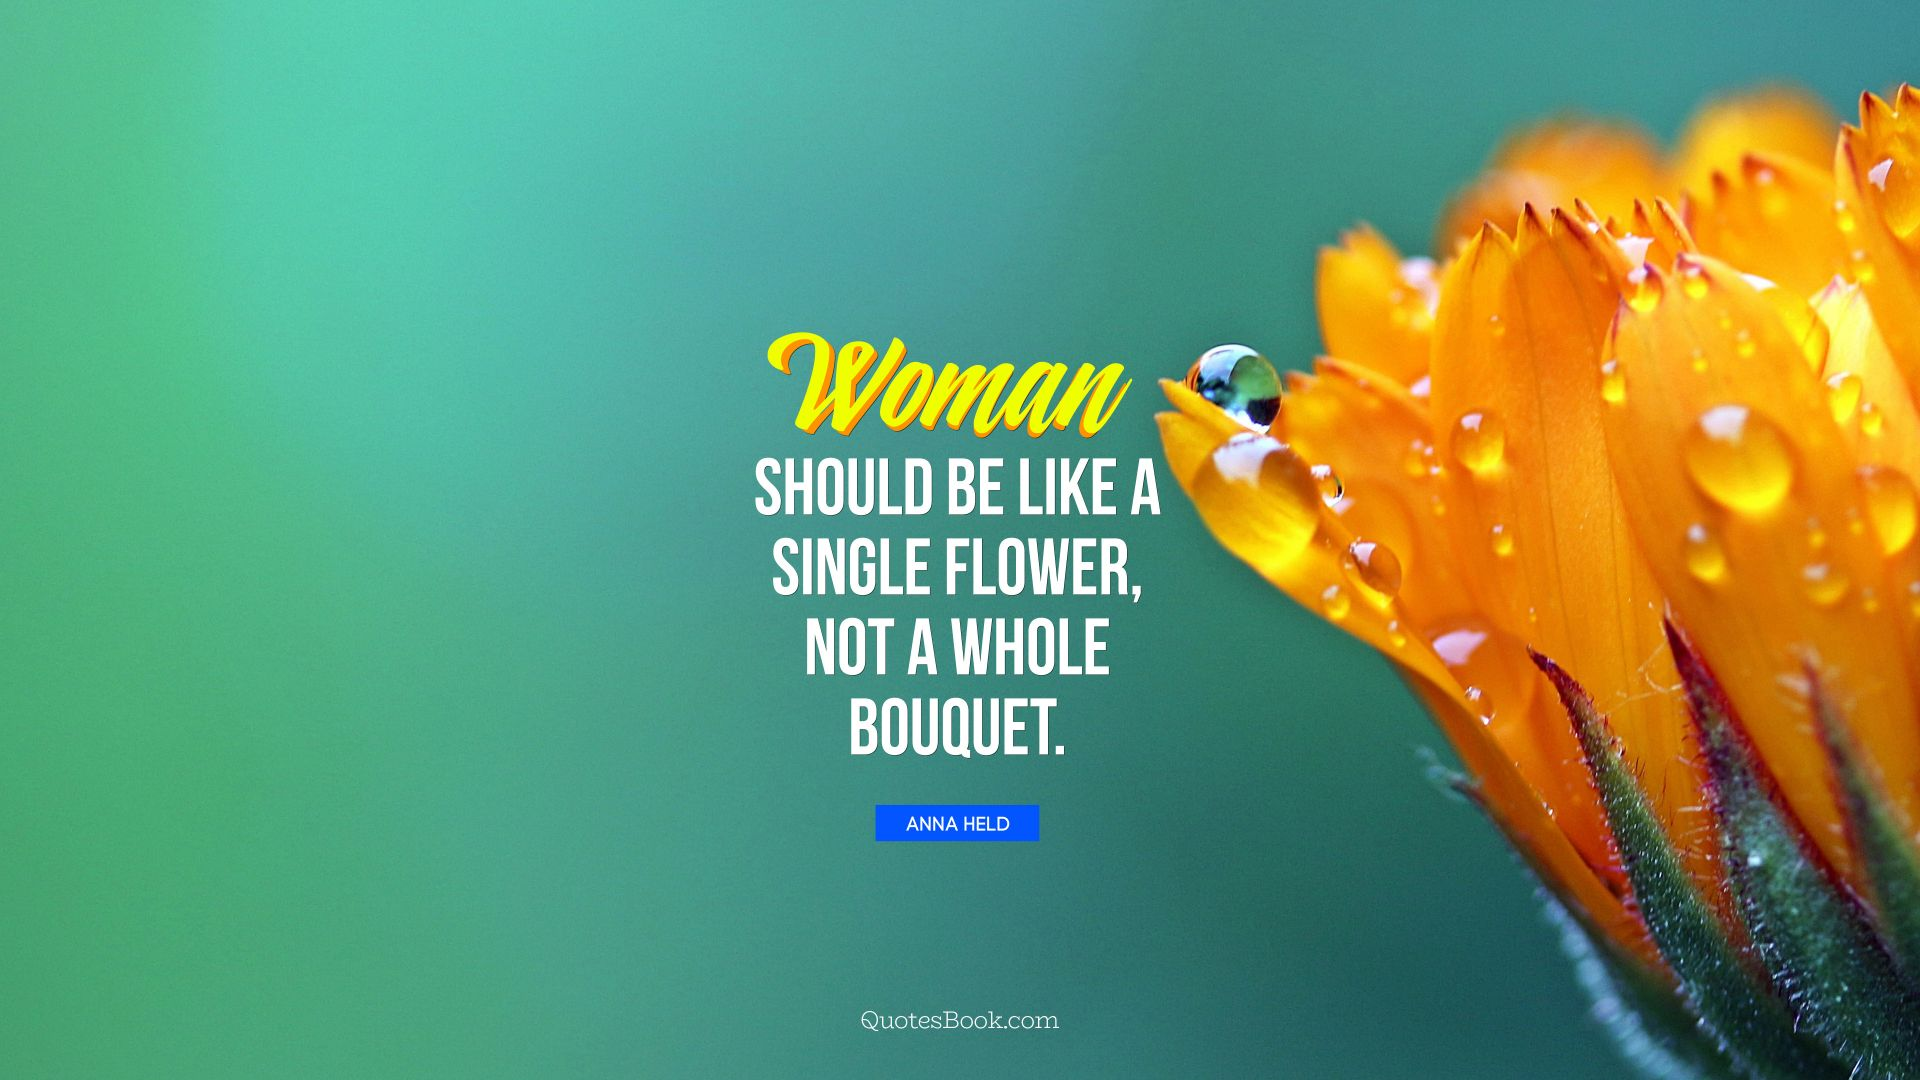 A woman should be like a single flower, not a whole bouquet. - Quote by Anna Held